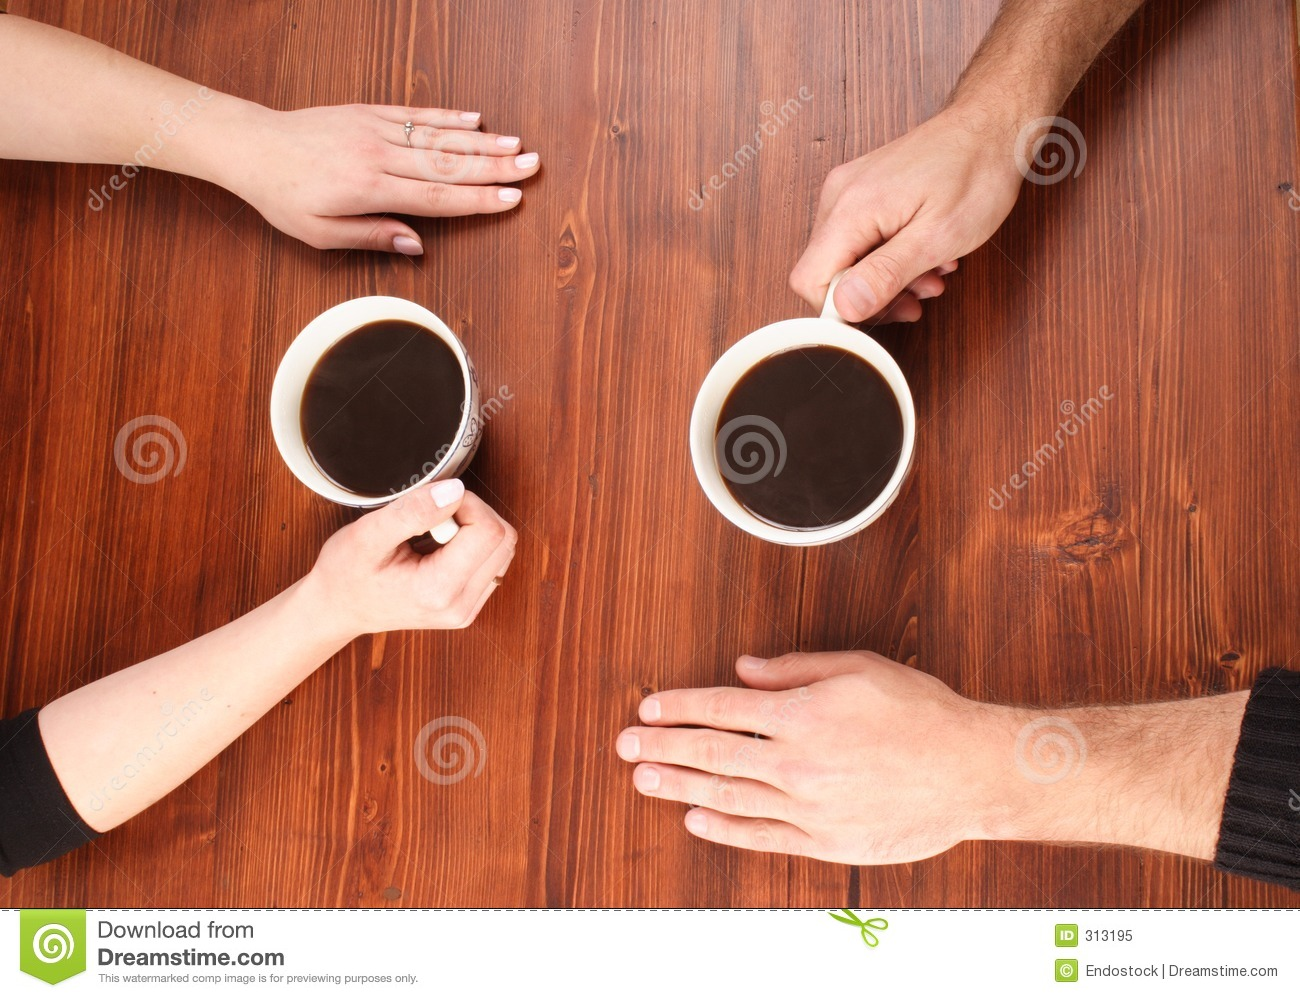 Four Hands On The Table Royalty Free Stock Photo - Image: 313195